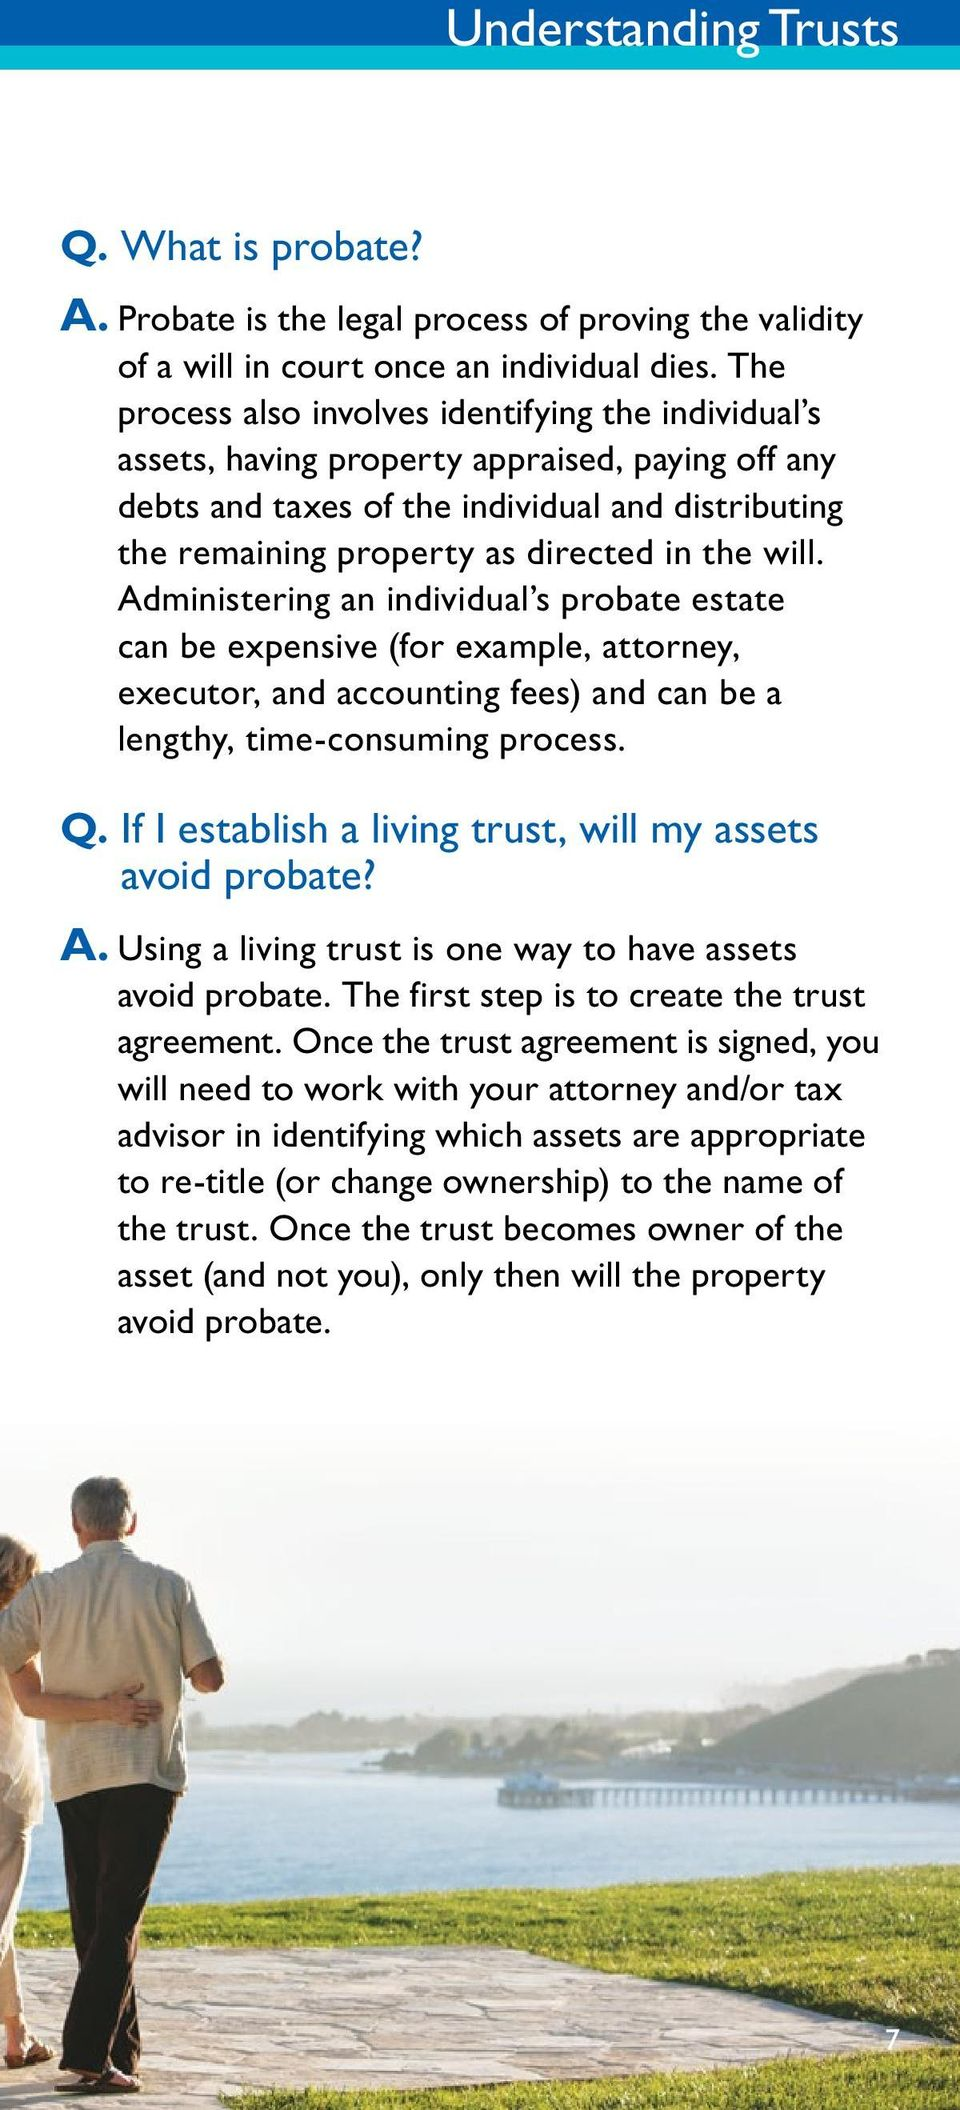 will. Administering an individual s probate estate can be expensive (for example, attorney, executor, and accounting fees) and can be a lengthy, time-consuming process. Q.